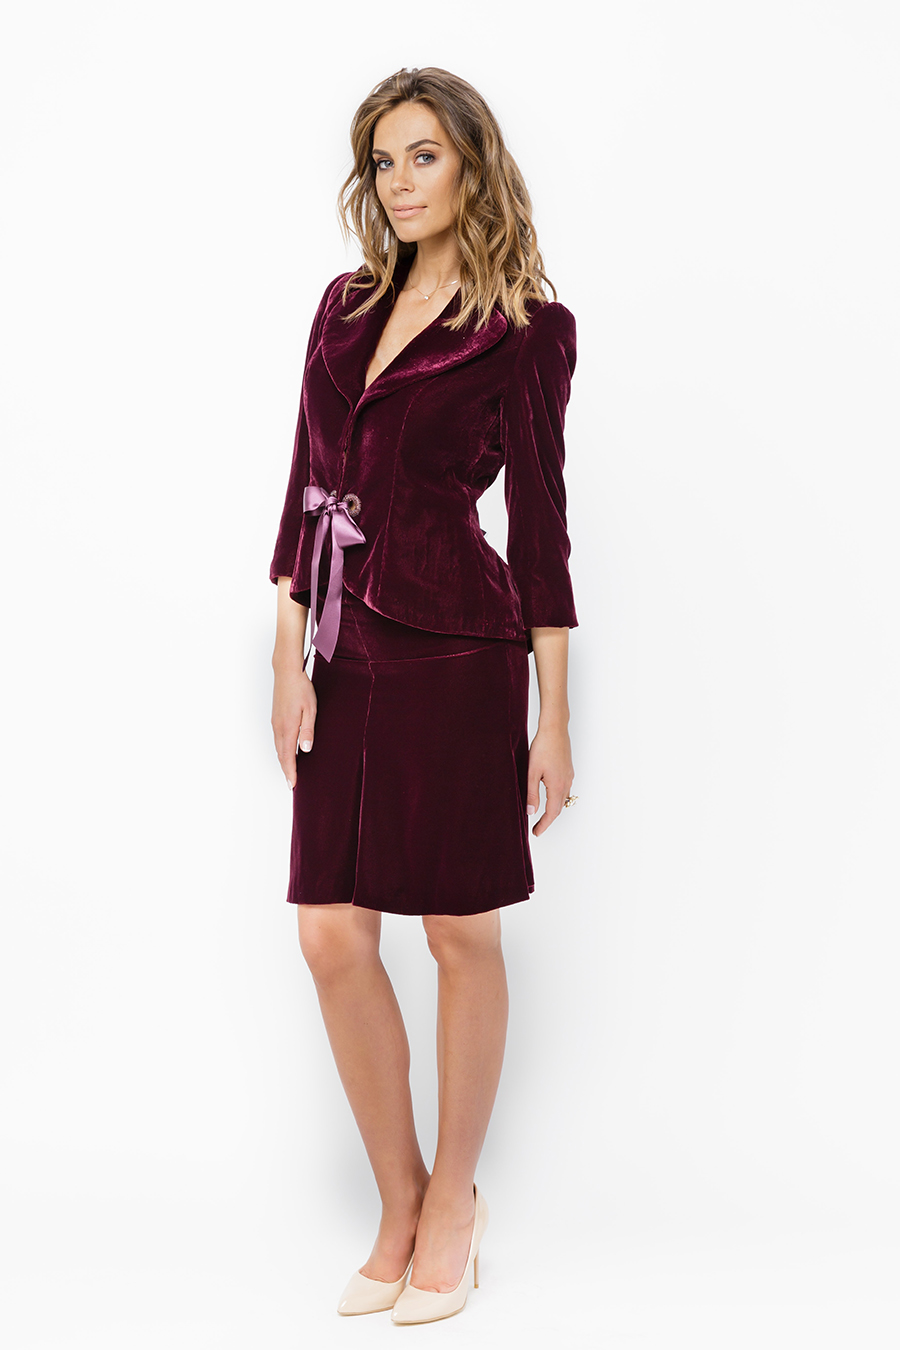 Burgundy Velvet Cherry Suit